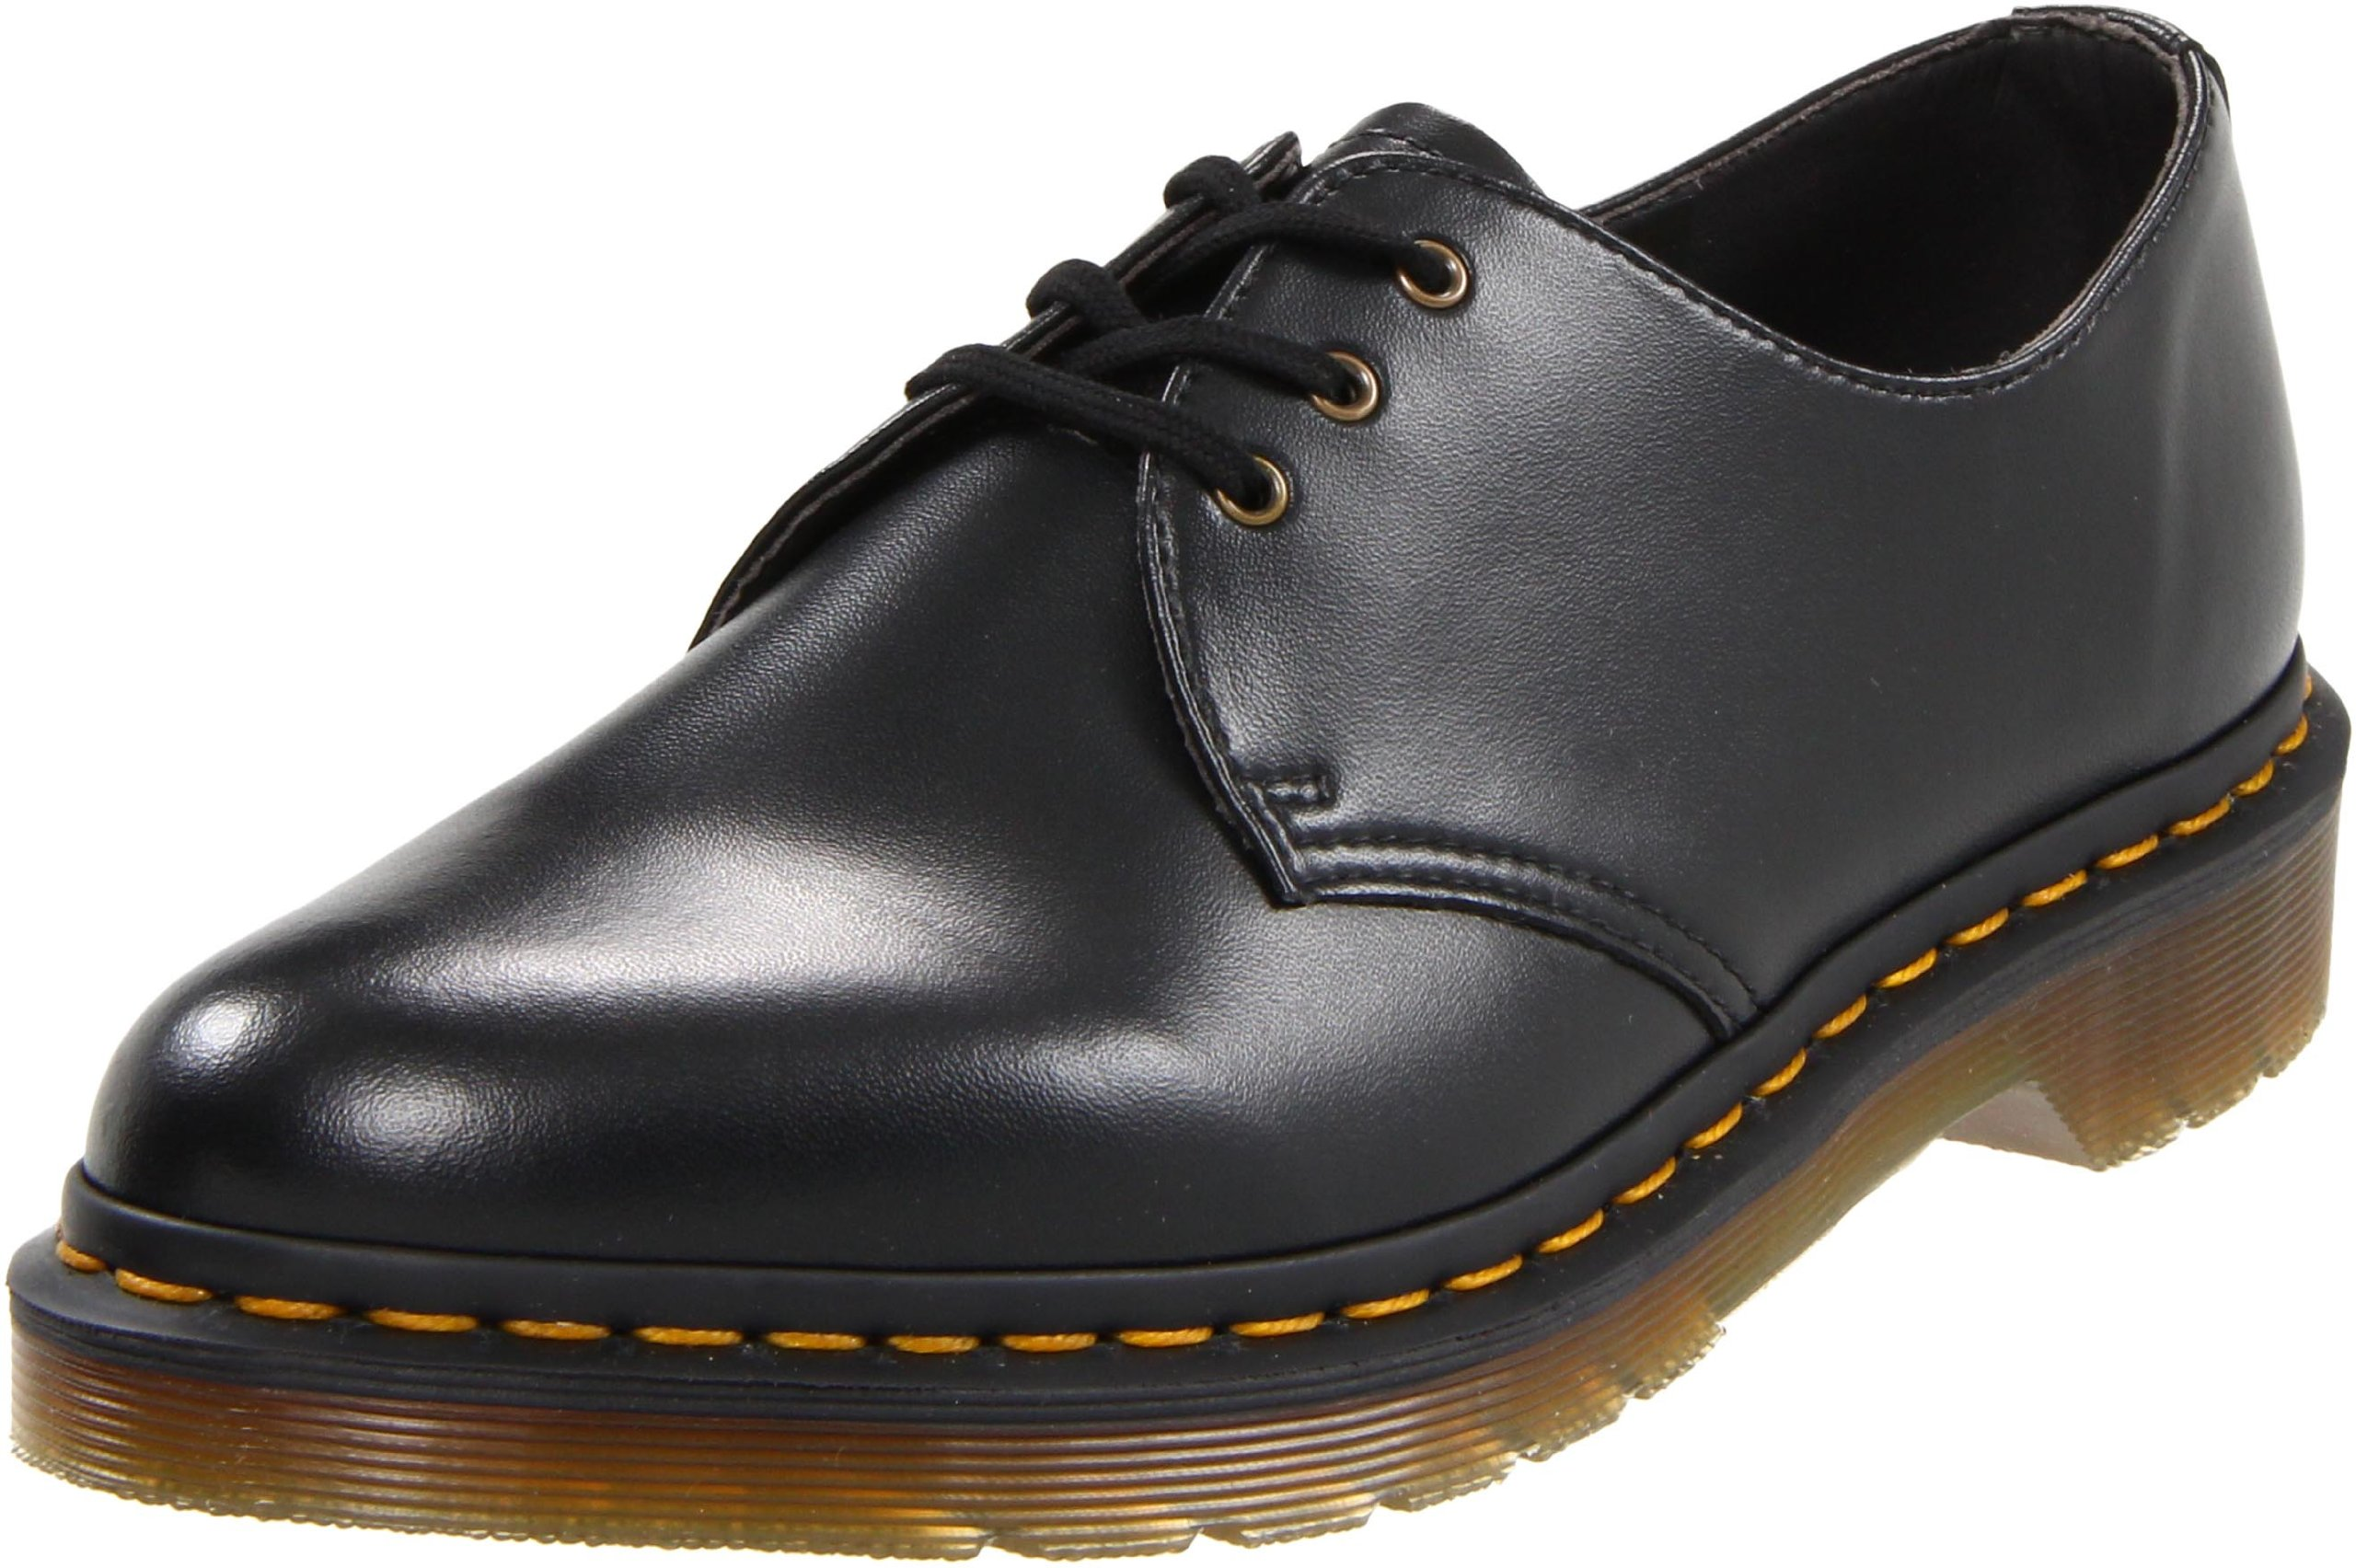 Dr. Martens Gibson 1461 Vegan Oxford,Black,5 UK (6 M US Men's/7 M US Women's)